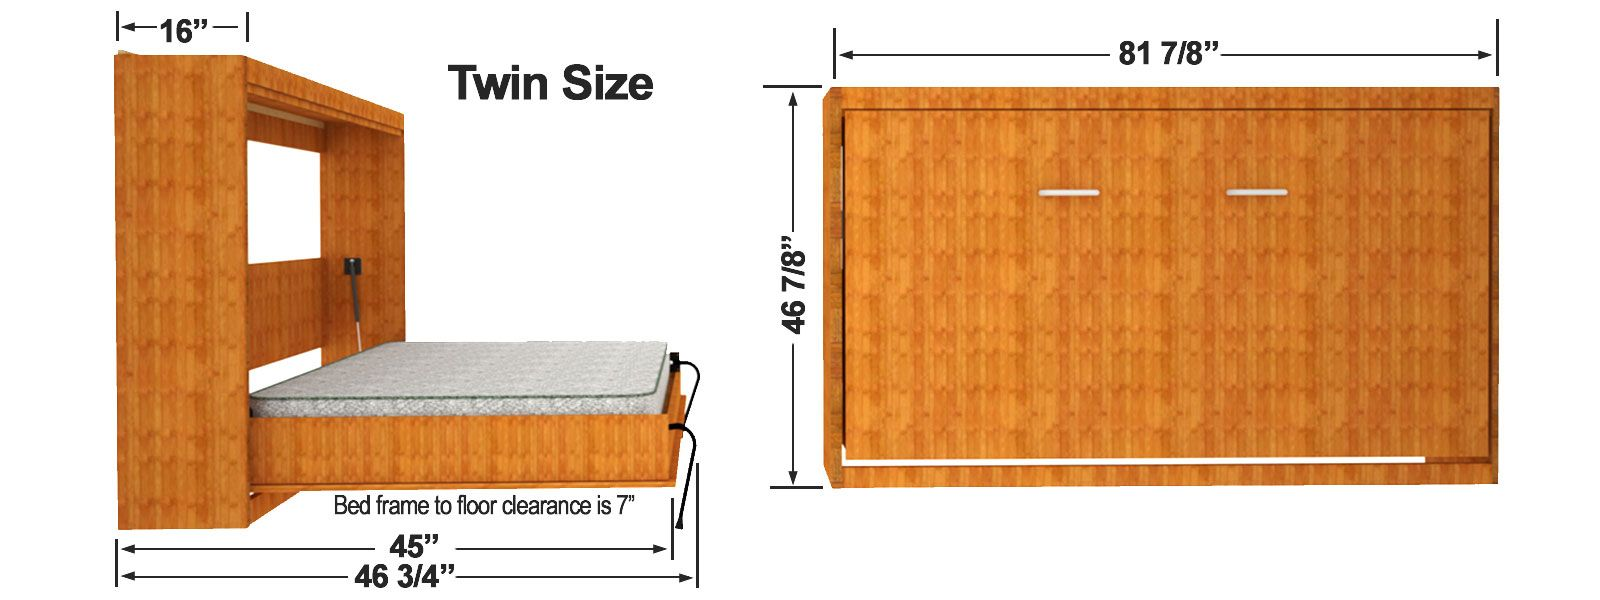 Horizontal Easy Diy Murphy Sizes Bed Twin Size Wall Cabinet Dimensions